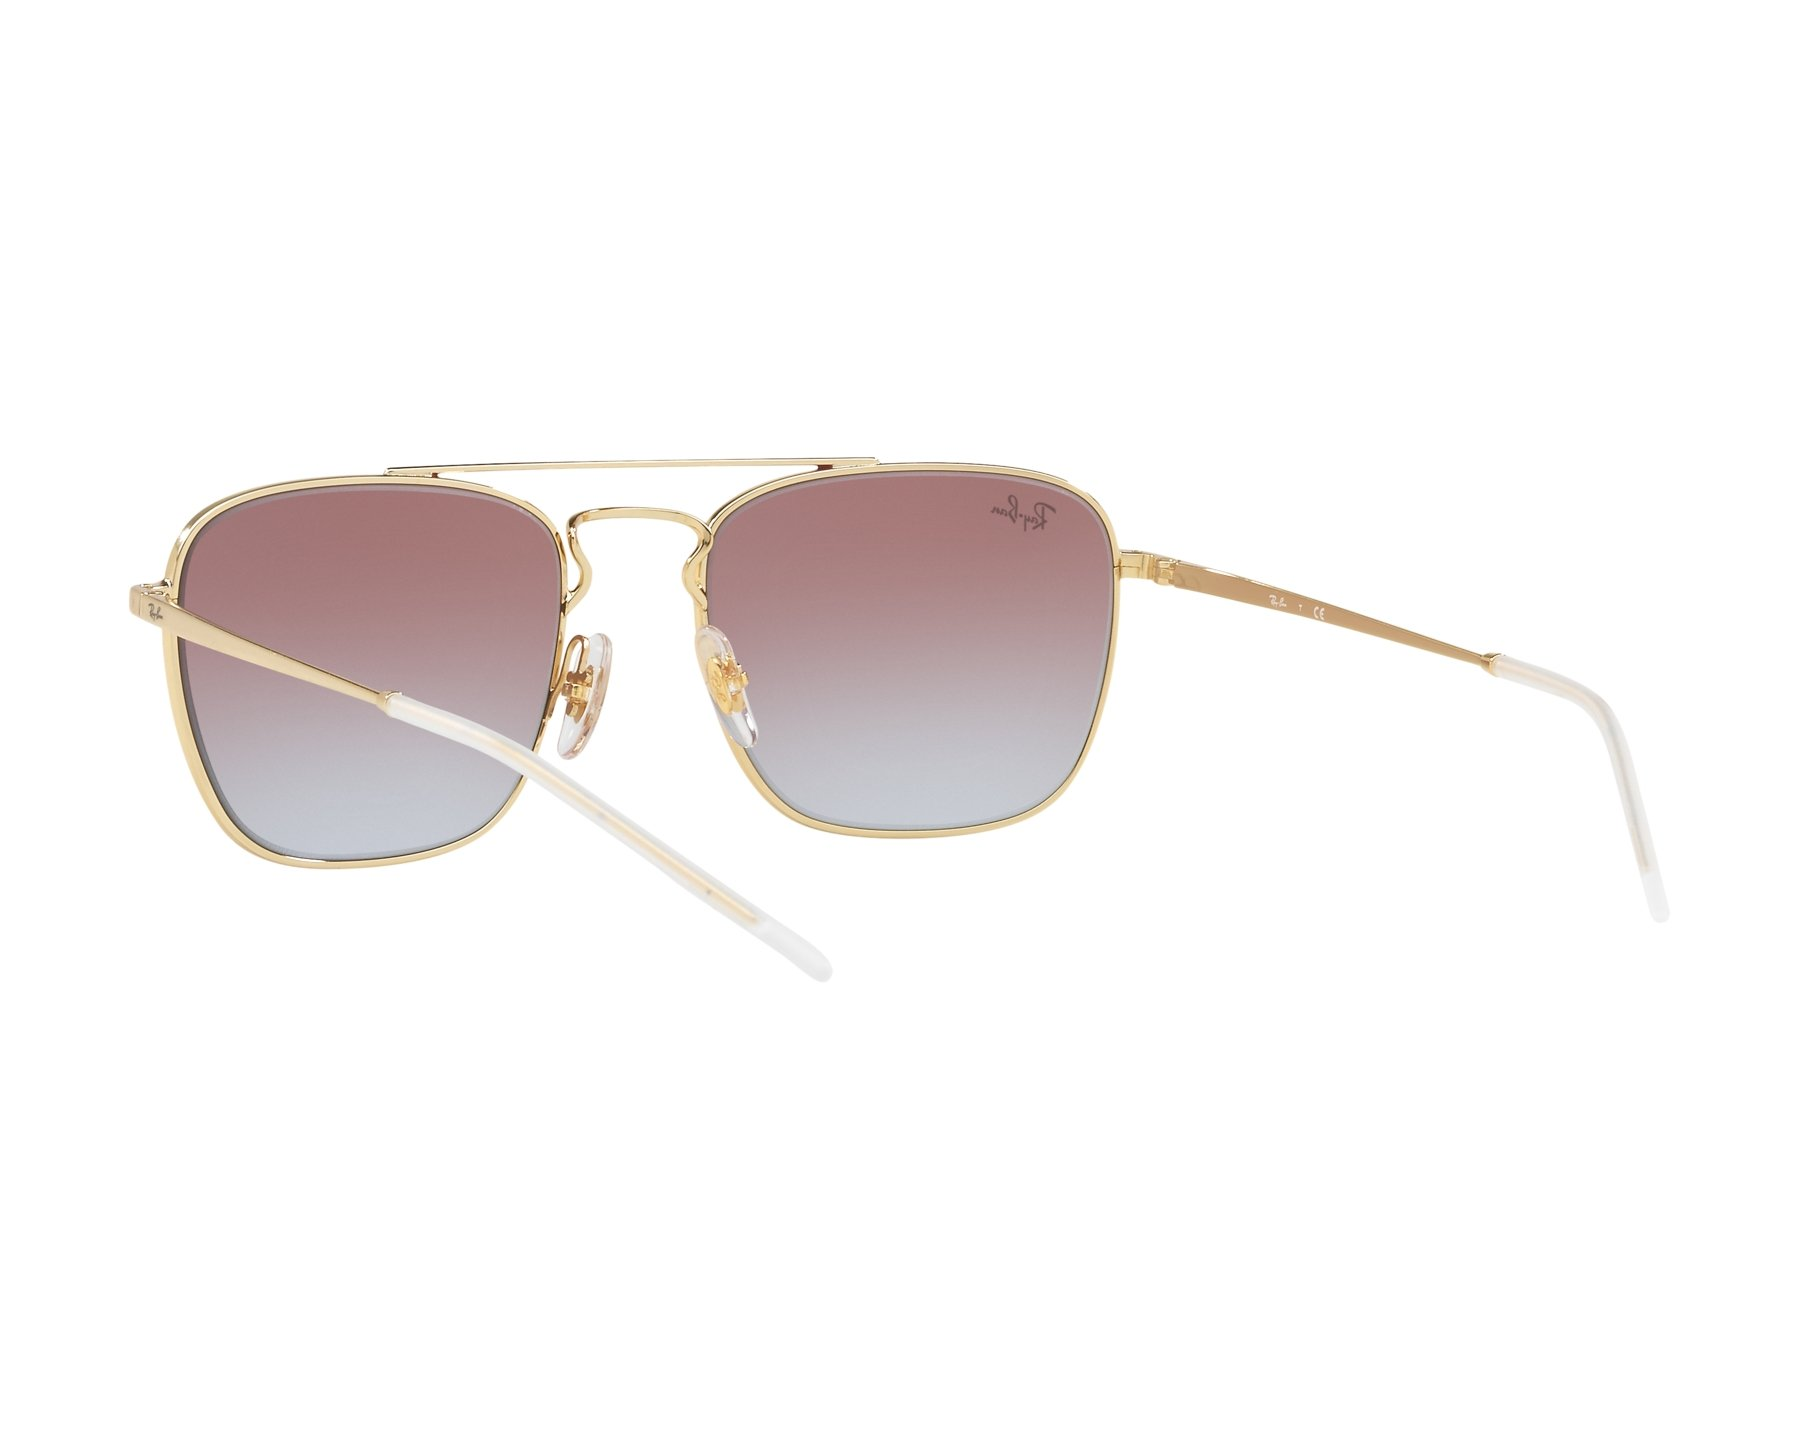 7dbf5f8eed9 Sunglasses Ray-Ban RB-3588 9060l8 55-19 Bordeaux Gold 360 degree view